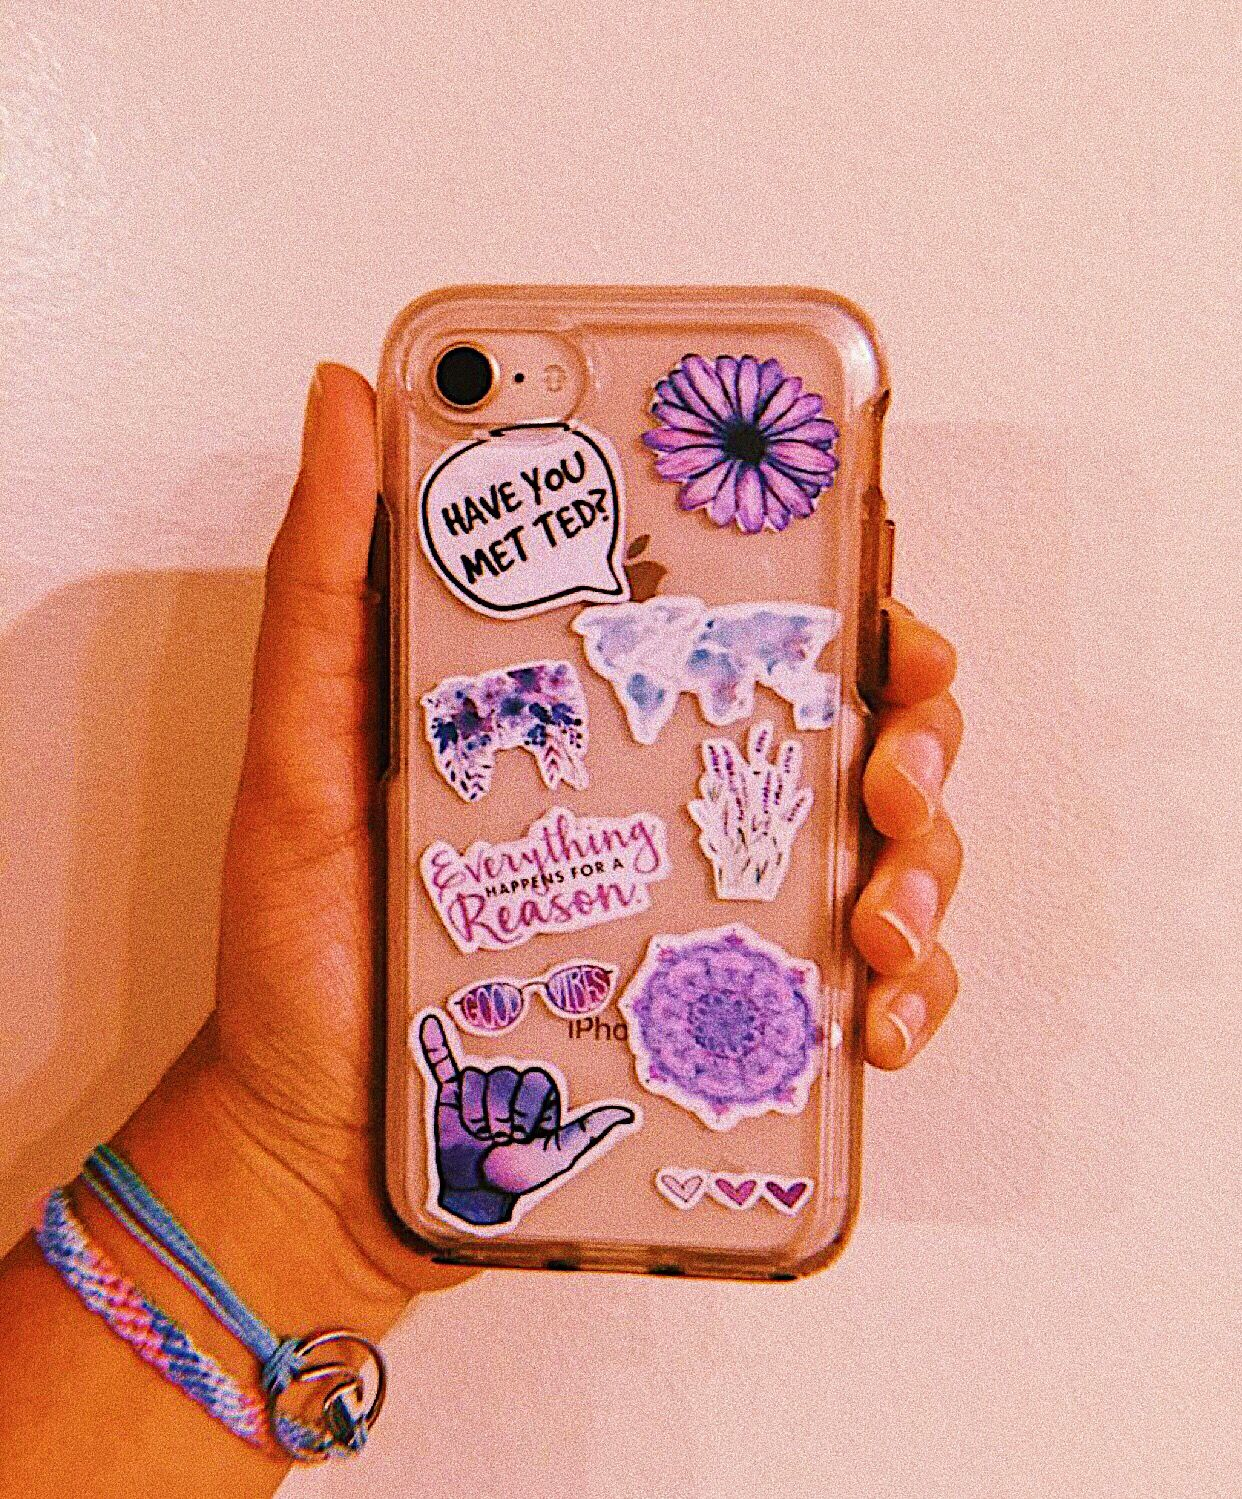 @bhavyaanoop | Tumblr phone case, Diy phone case, Case